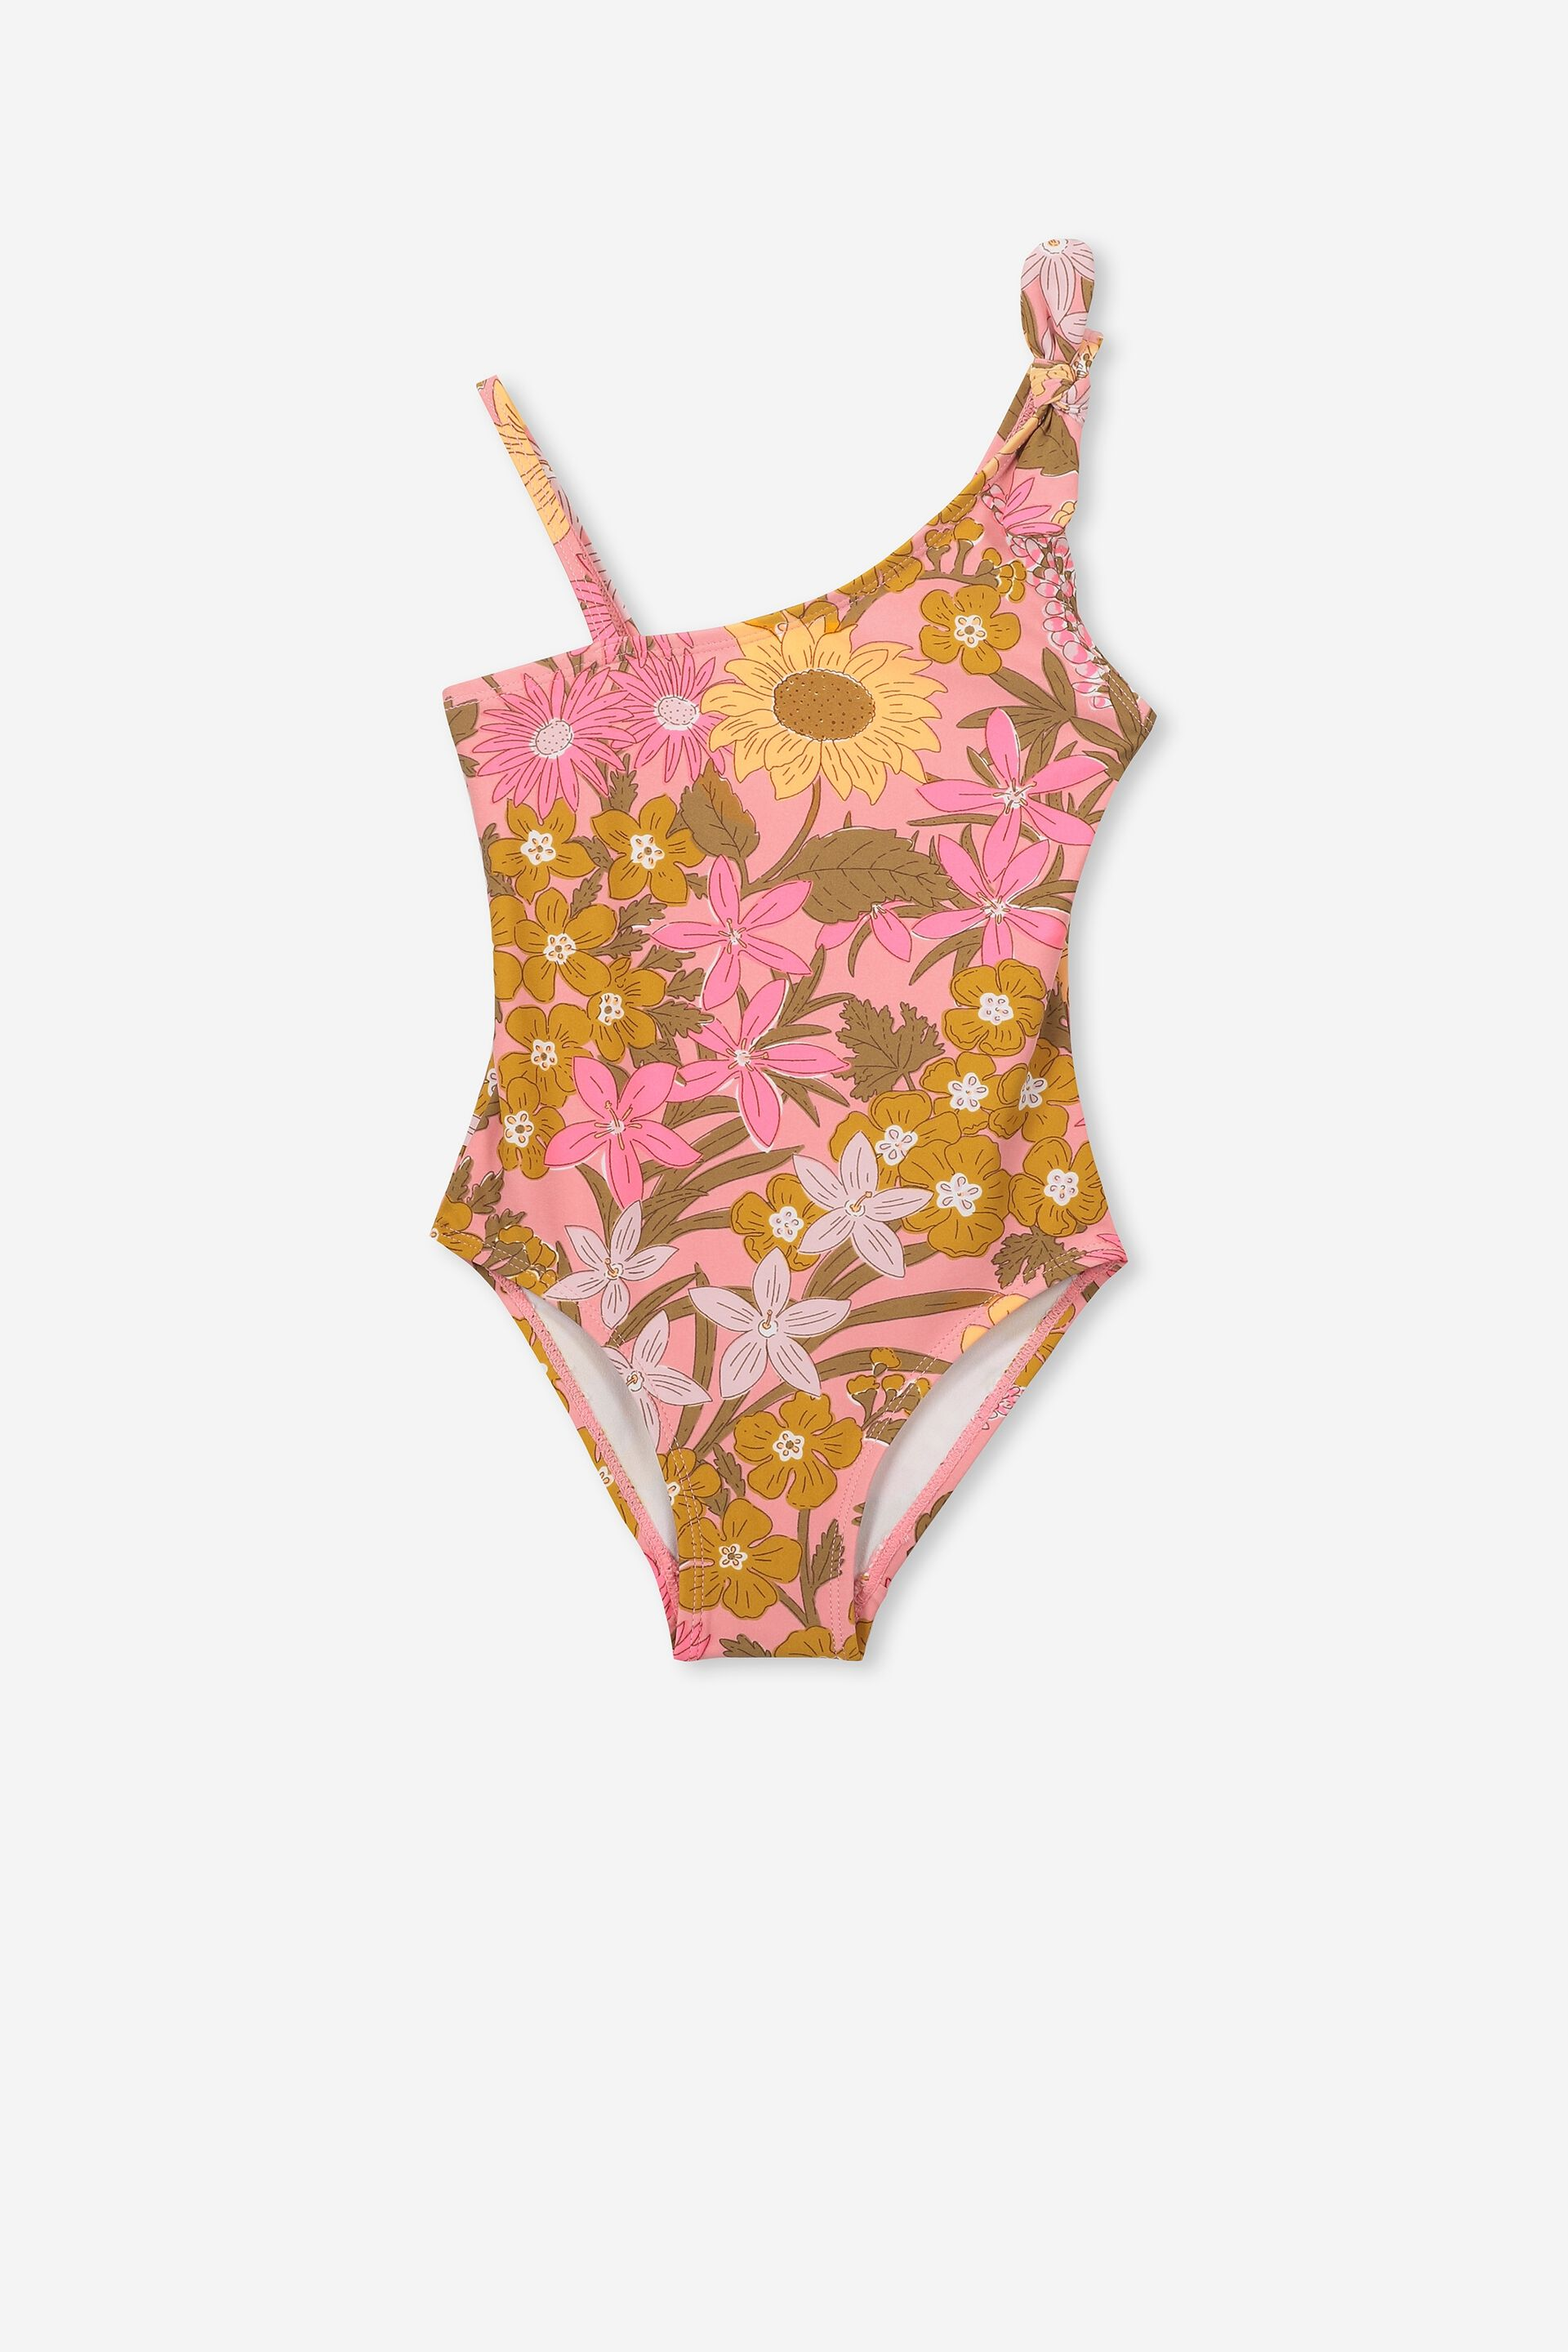 MILKY Baby Girl Pink w Hearts Bathers Bikini Bottom Size 0 SLIM FIT New